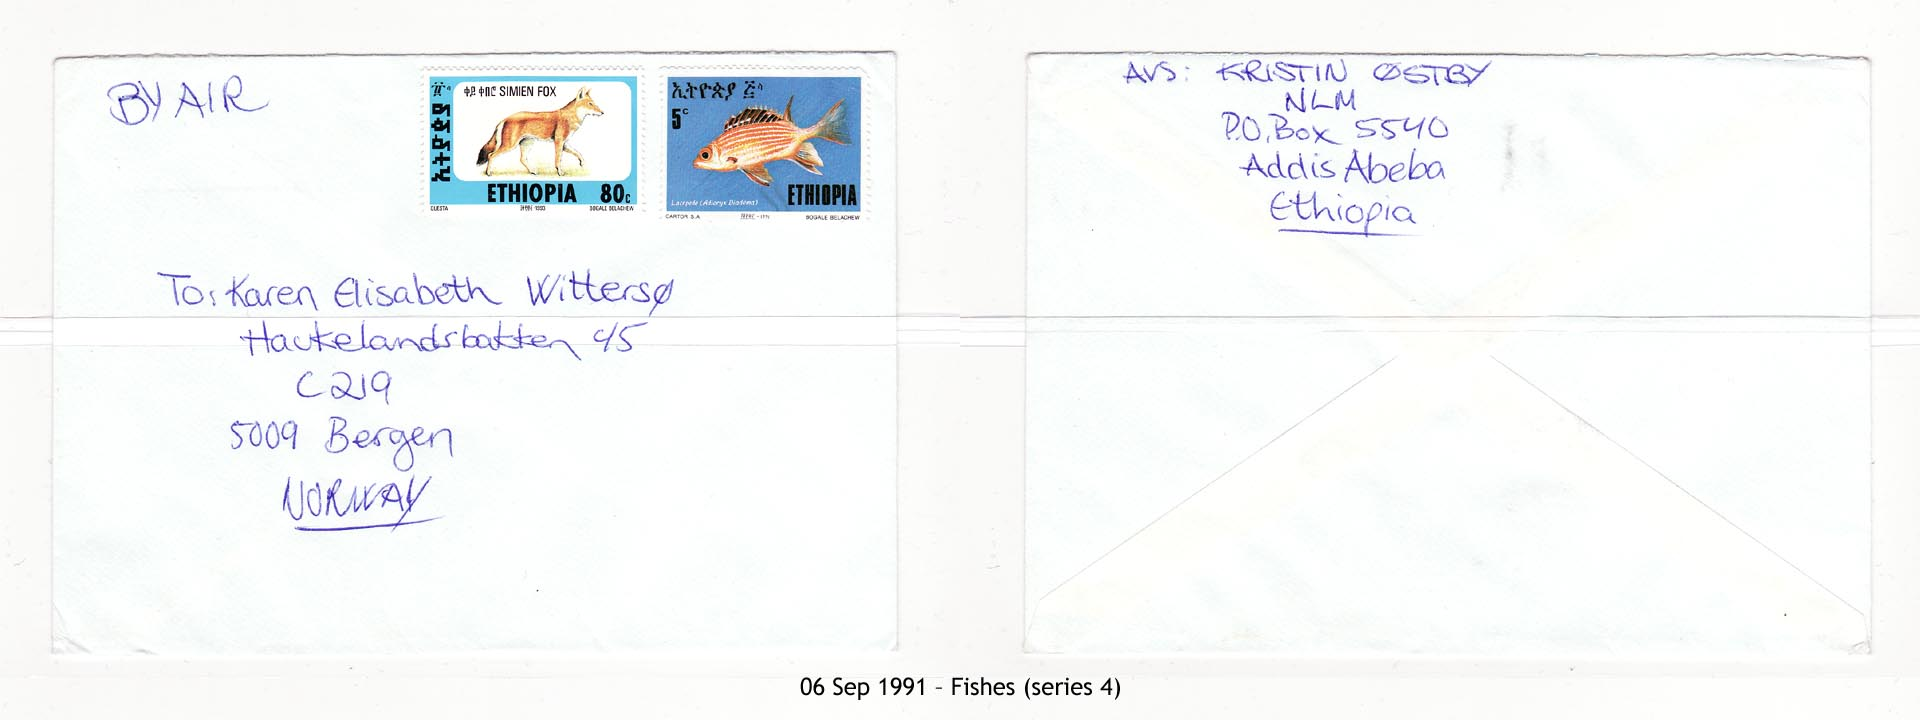 19910906 – Fishes (series 4)